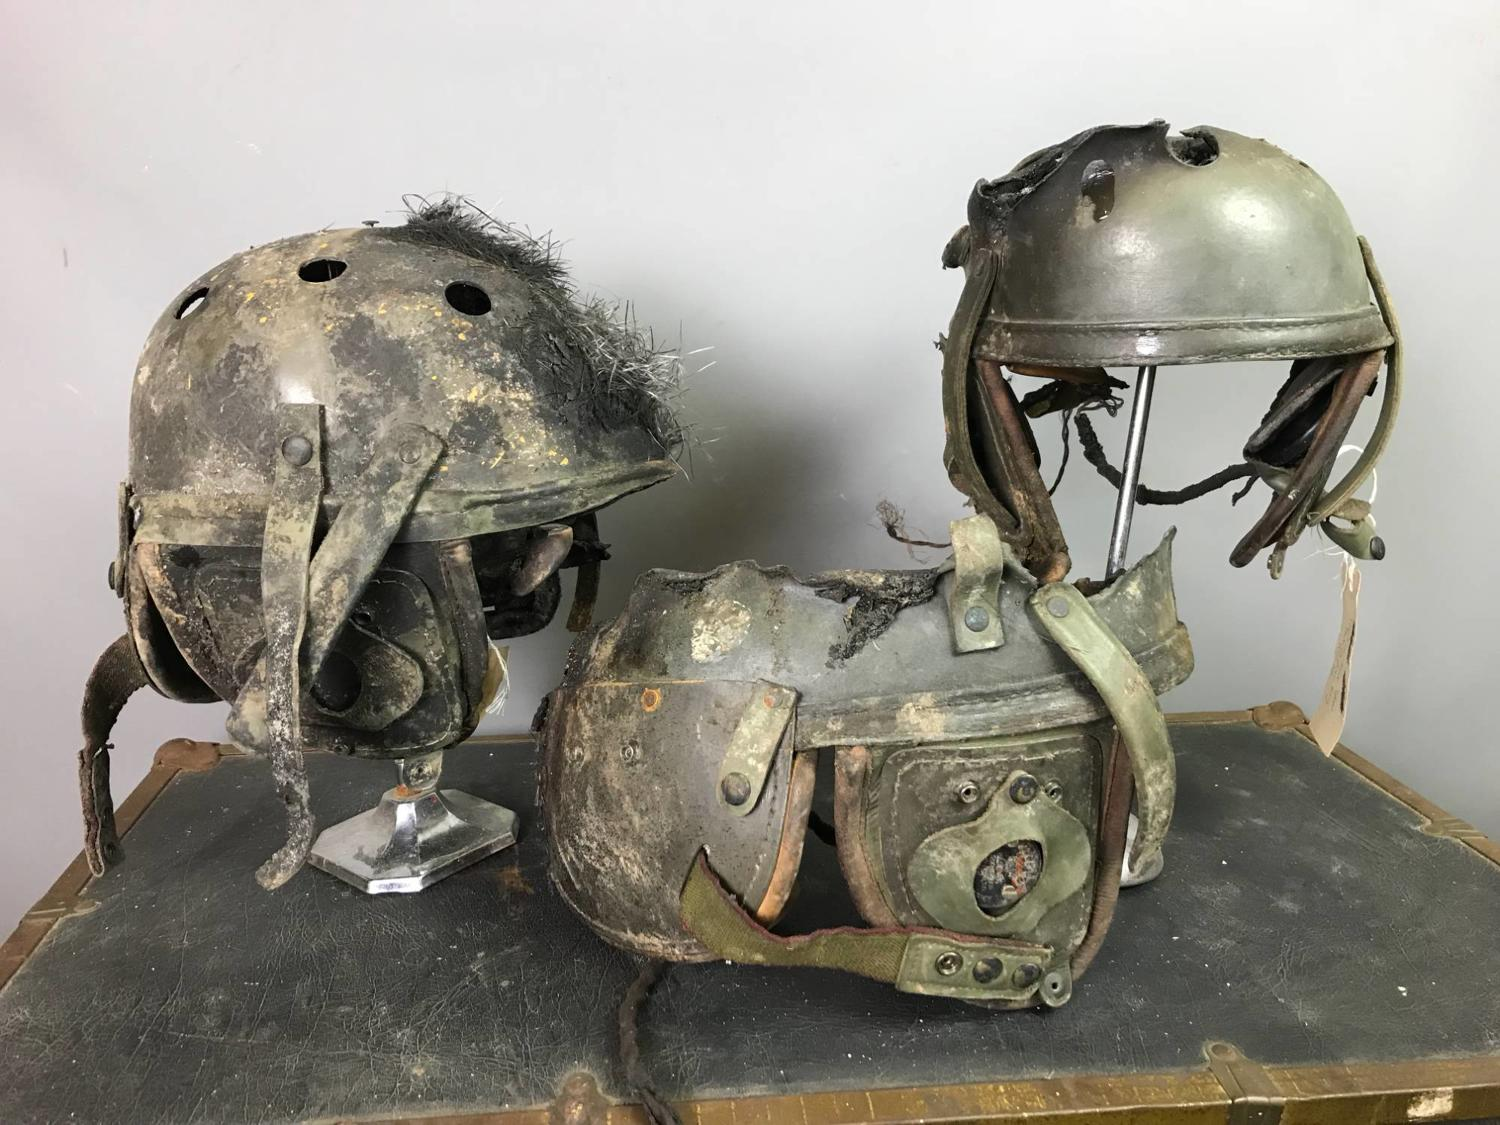 Film Props - Tankers Helmets from the Film FURY starring Brad Pitt